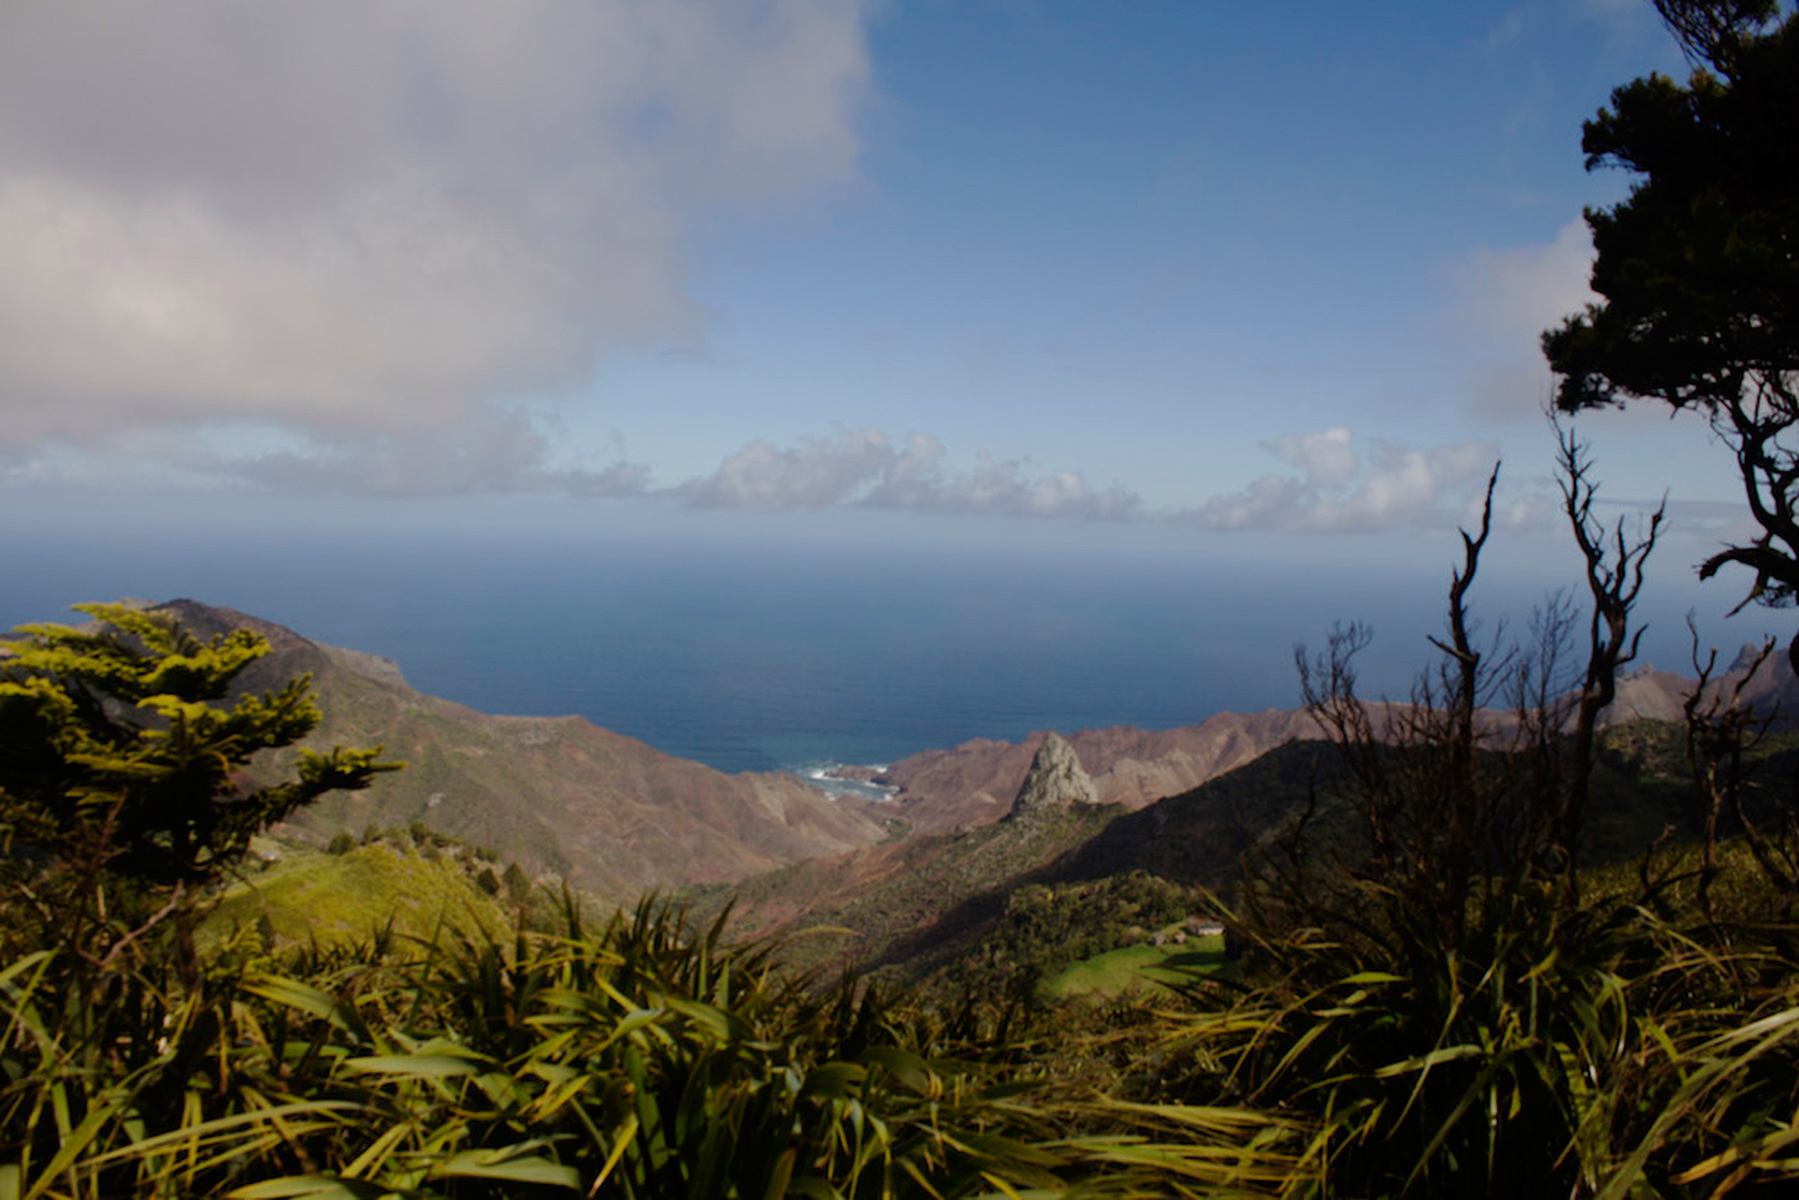 St Helena images